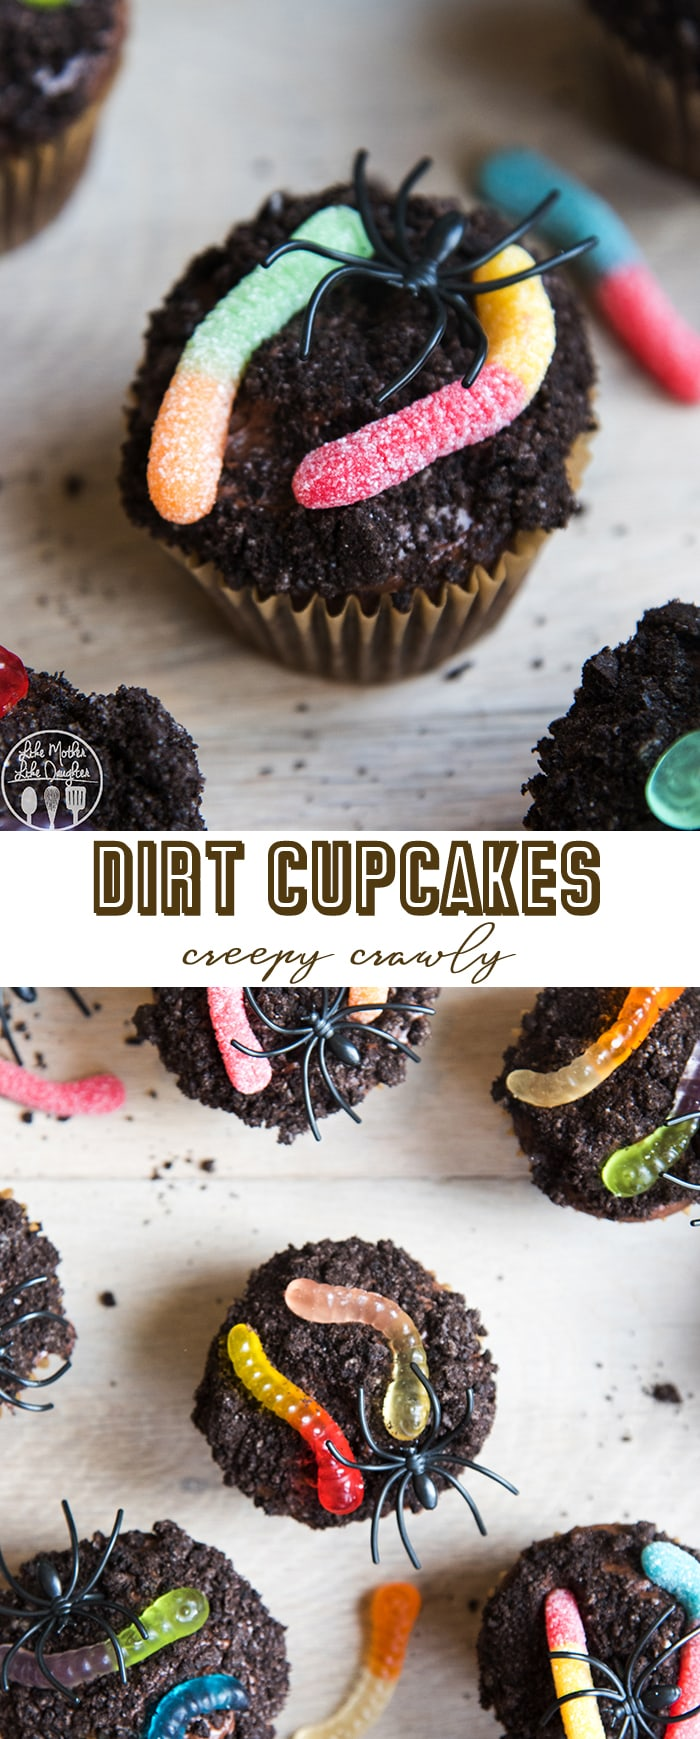 Dirt cupcakes are a delicious chocolate cupcake with chocolate frosting